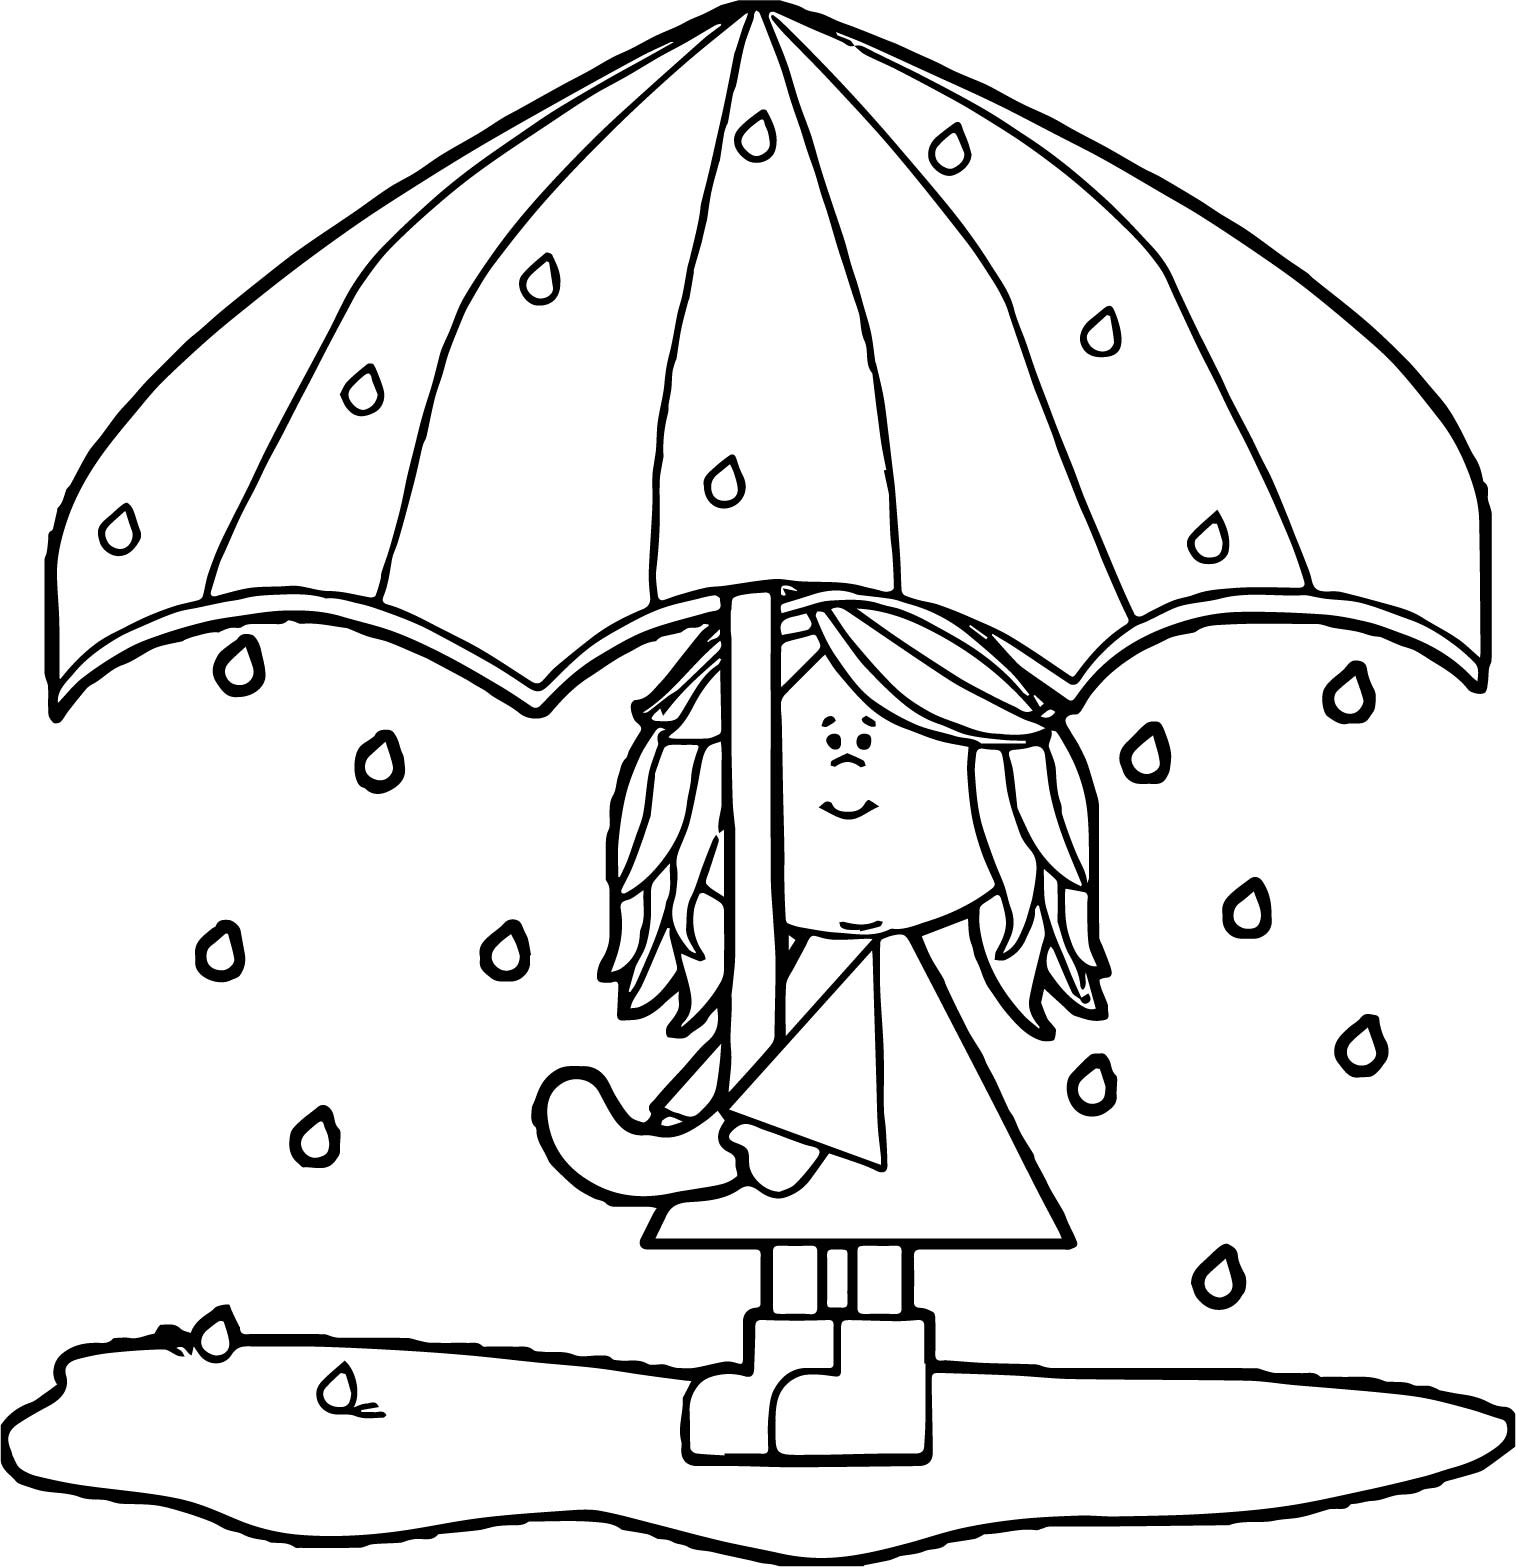 April Shower Girl Umbrella Coloring Page